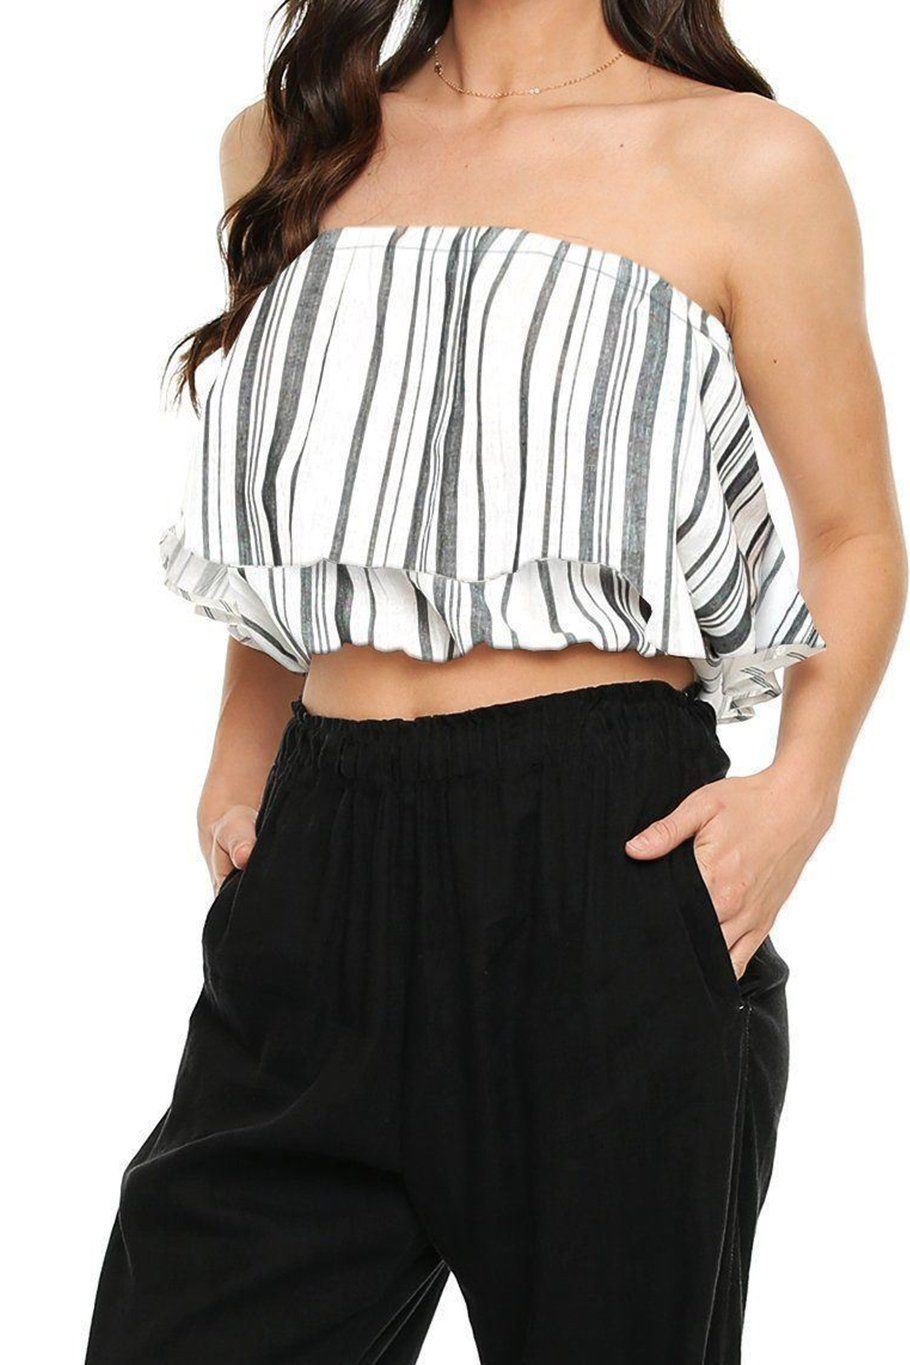 Huntington Layered Top - Shore Stripe - Shore